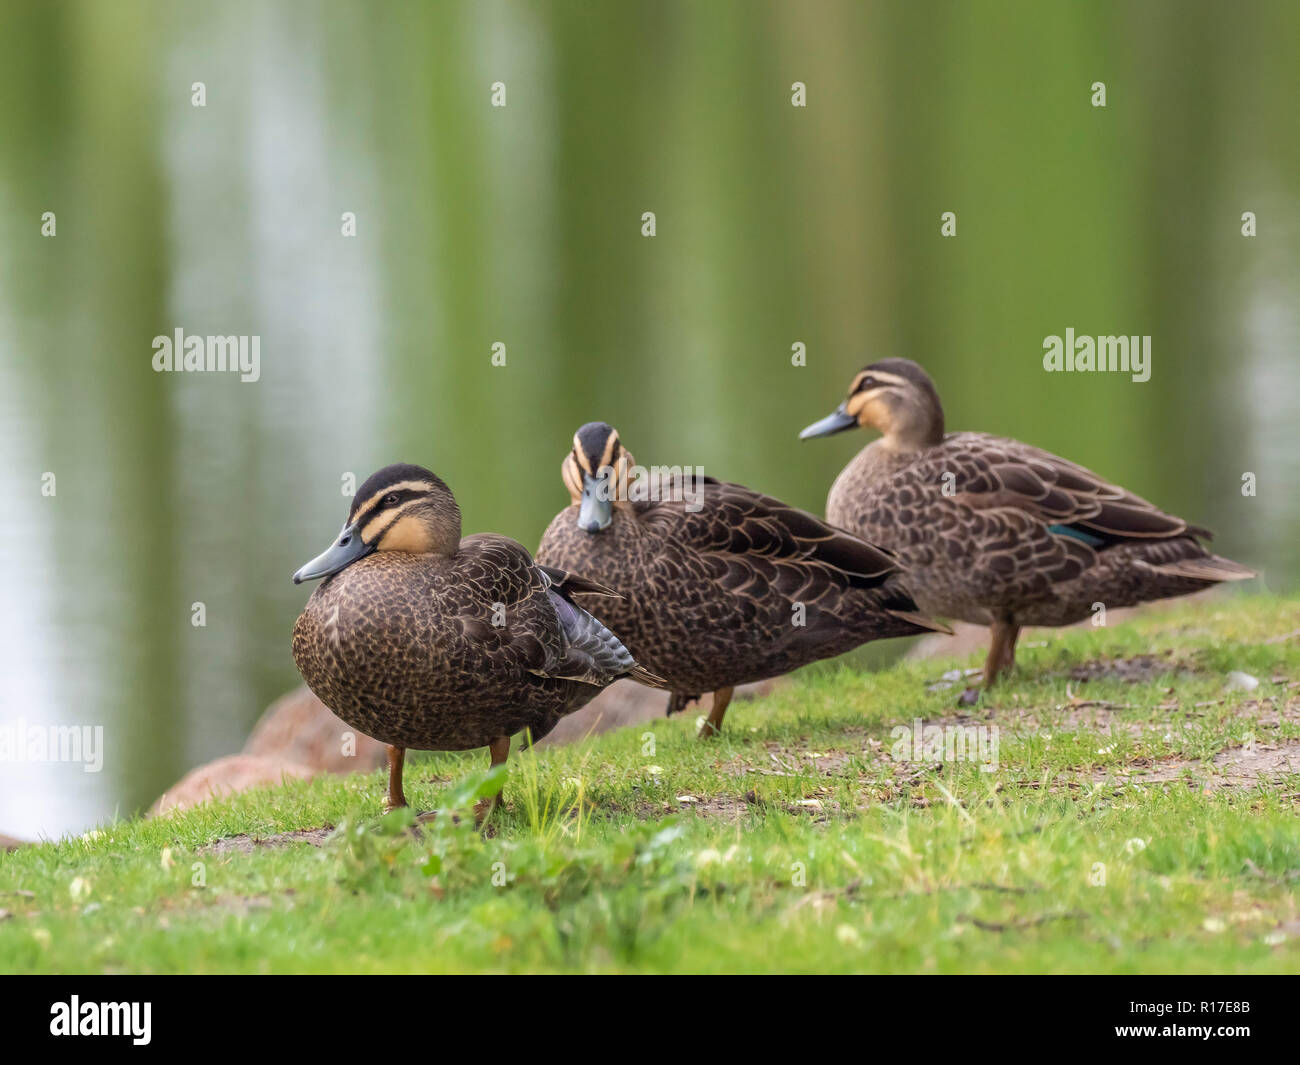 Brown And Black Duck Stock Photos & Brown And Black Duck Stock